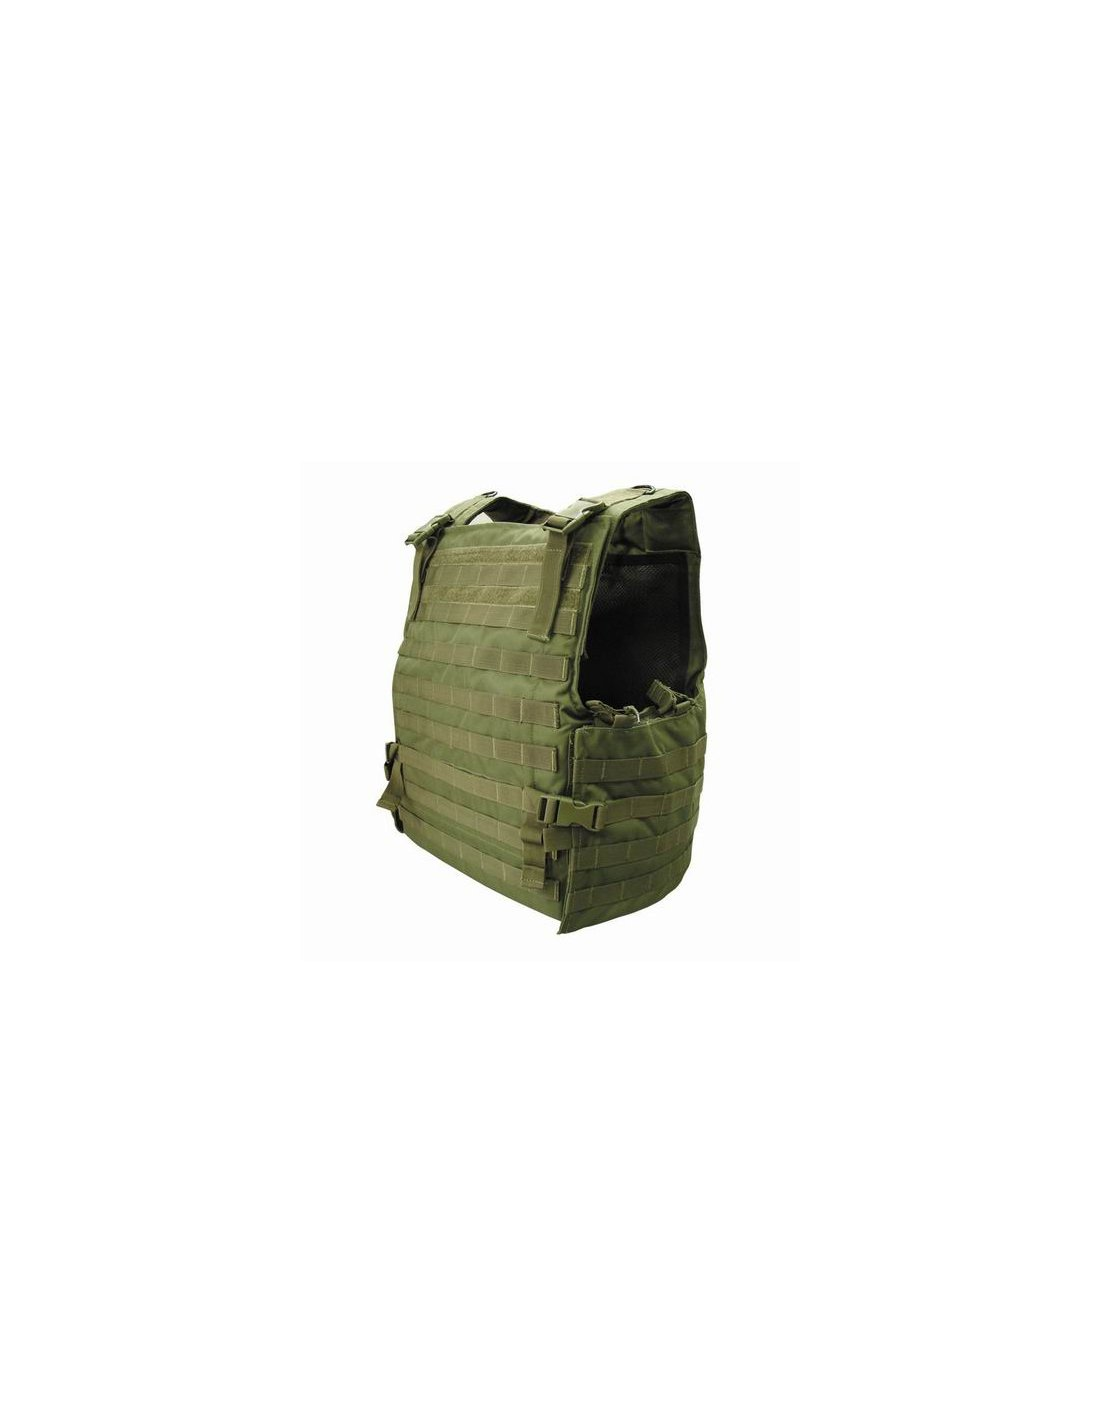 MPC-001 Condor Modular Plate Carrier MOLLE PALS Olive Drab